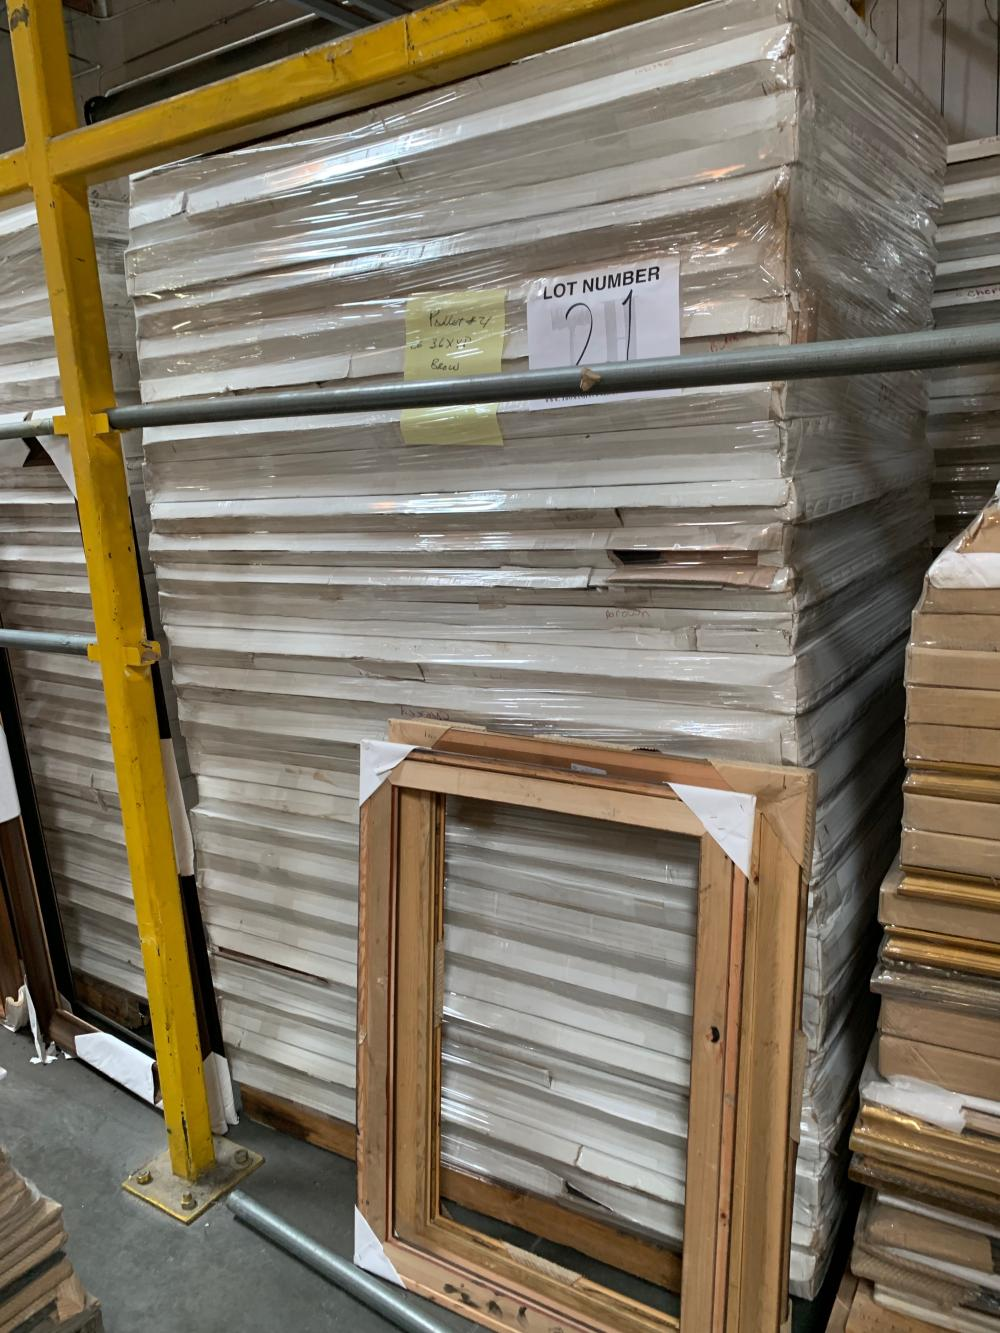 Pallet of Picture Frames 21